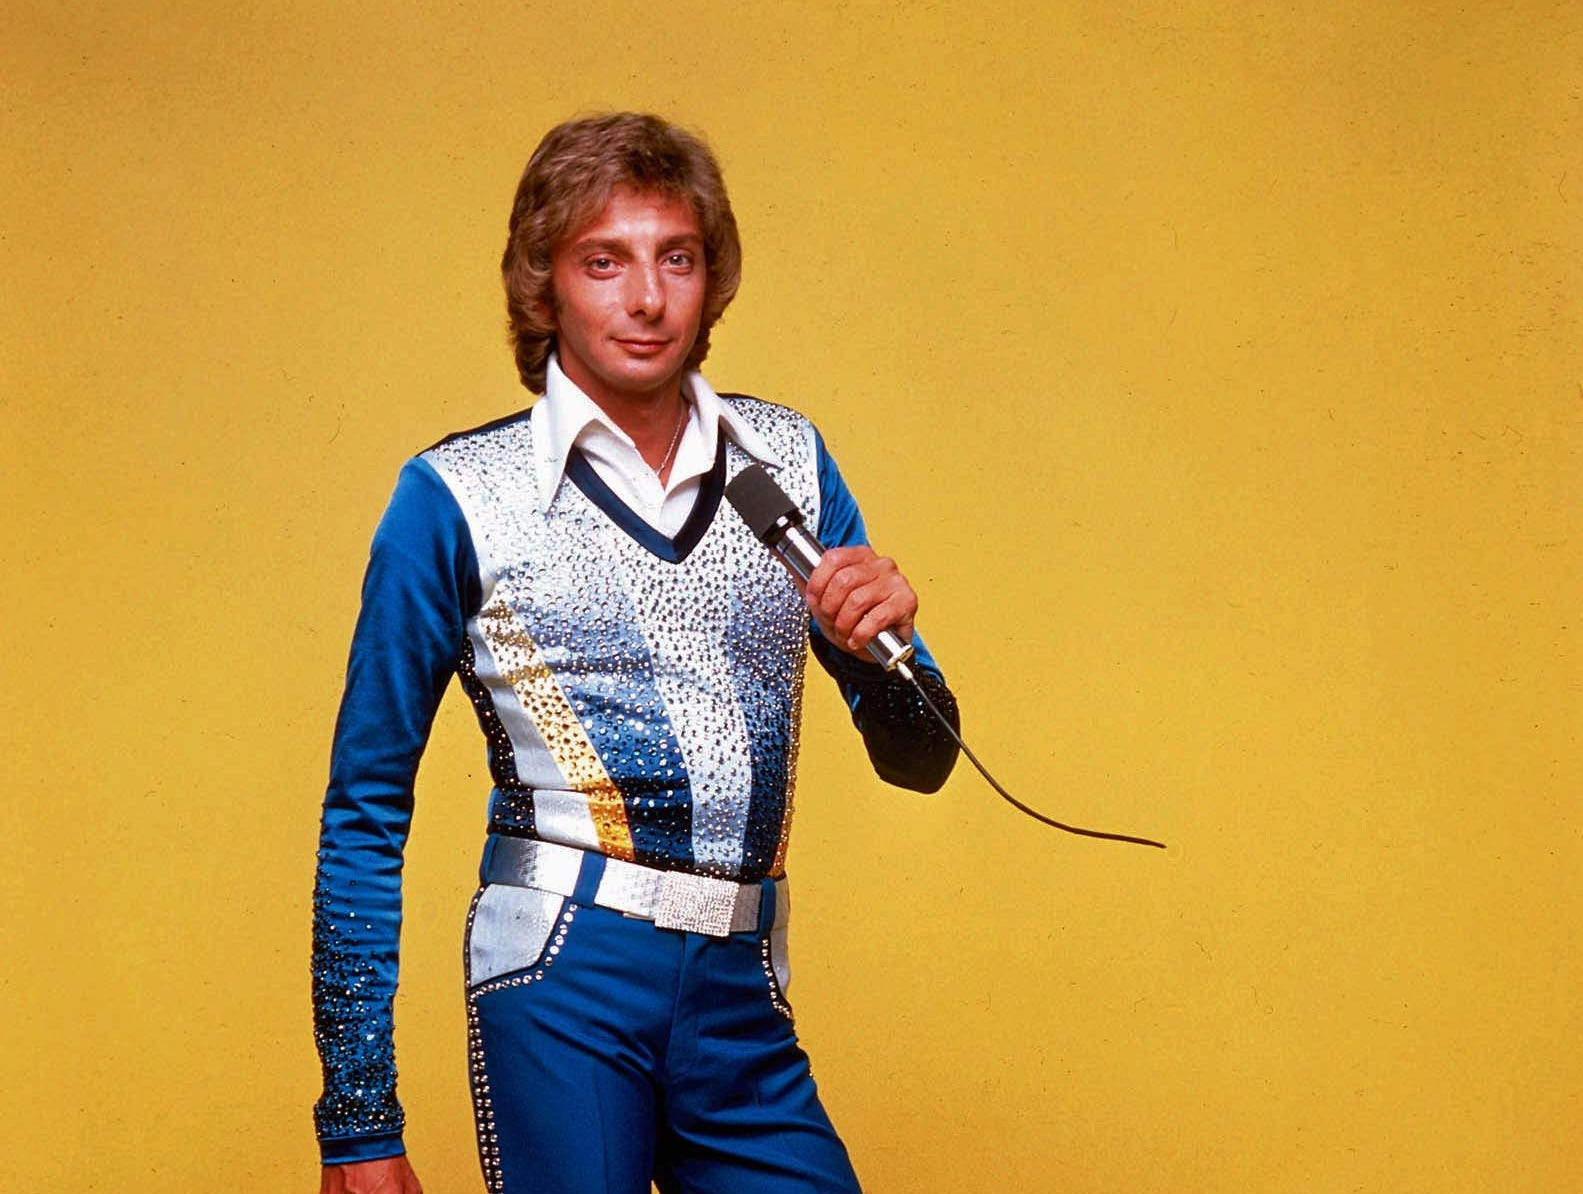 Barry Manilow in the 1970s.